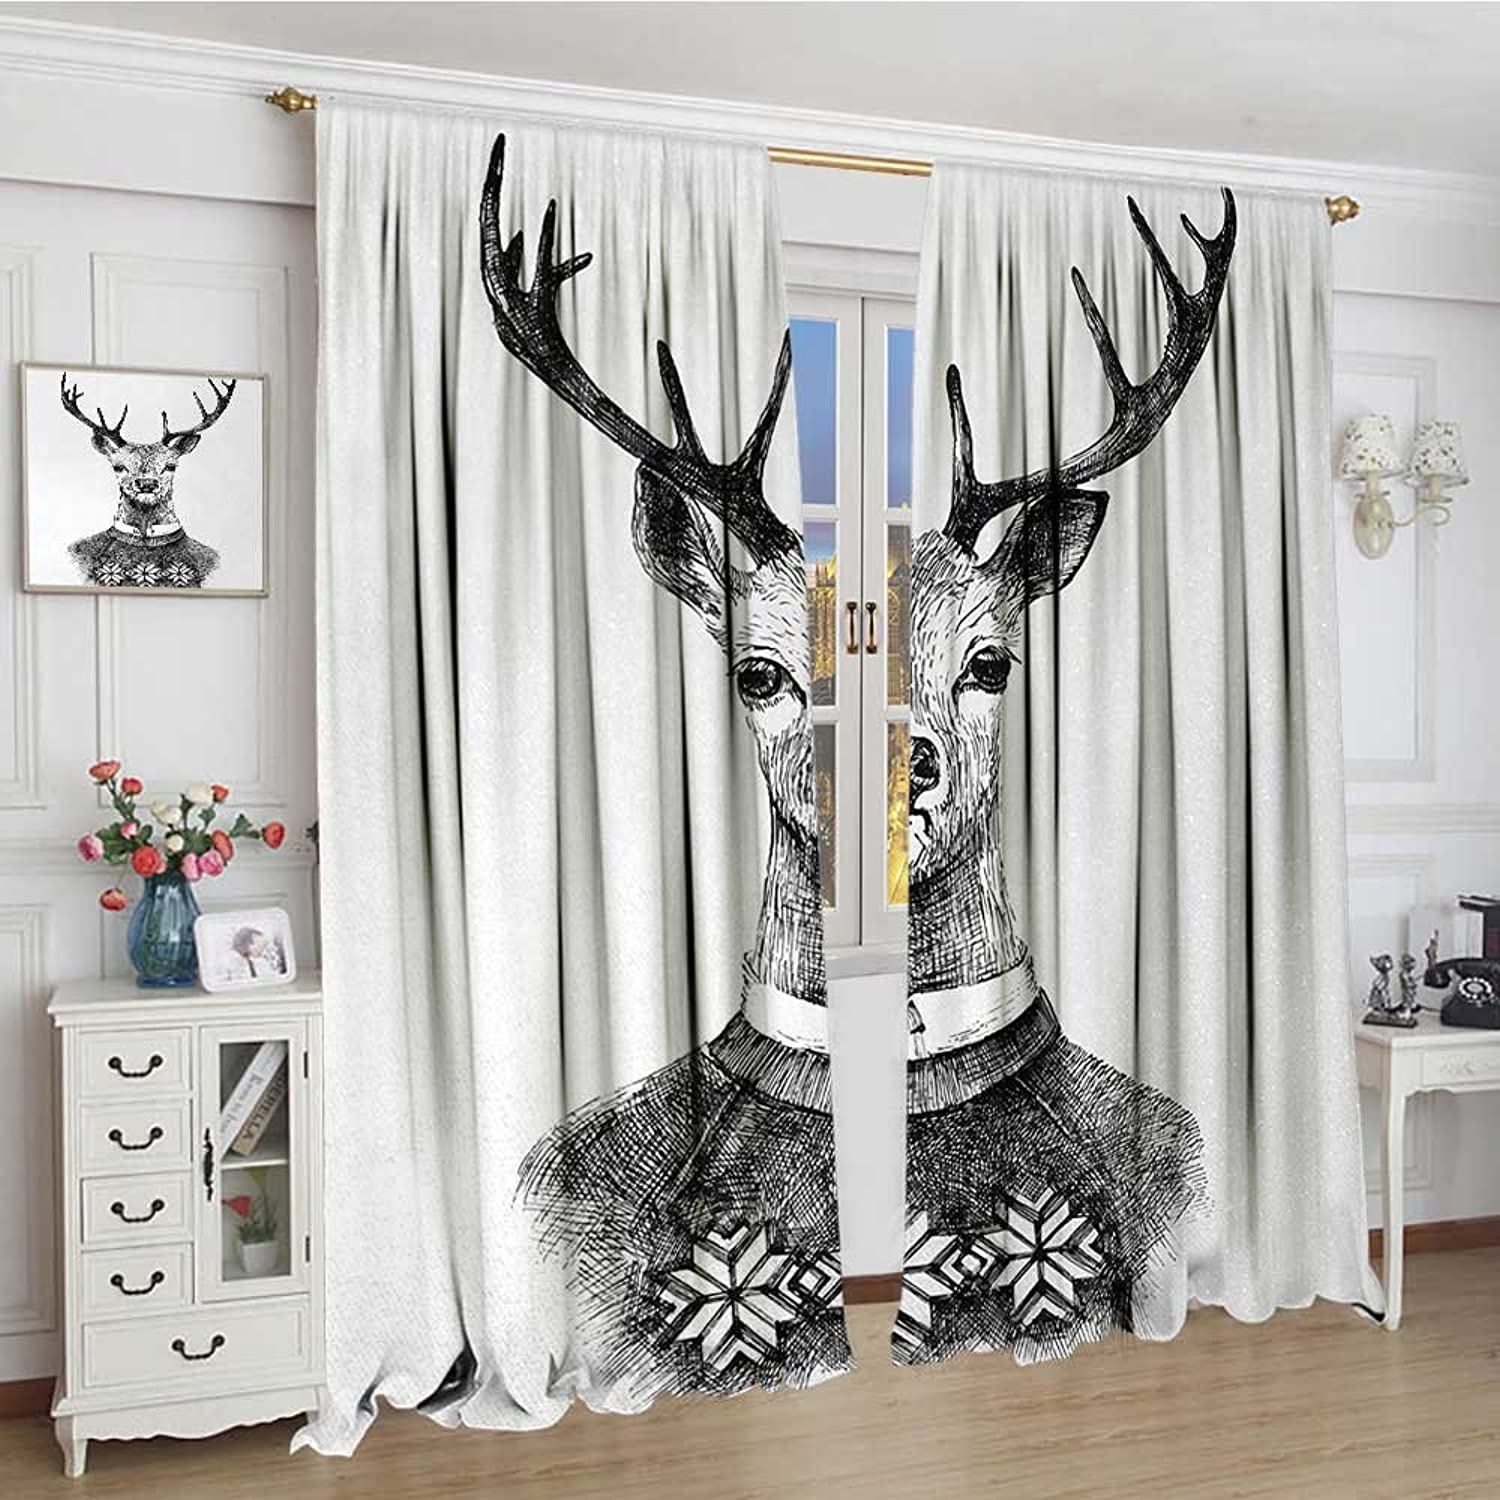 Smallbeefly Indie Widened Blackout Window Curtain Hand Drawn Deer Portrait in a Nordic Style Knitted Sweater Hipster Christmas Waterproof Window Curtain 120 x72  Charcoal Grey White